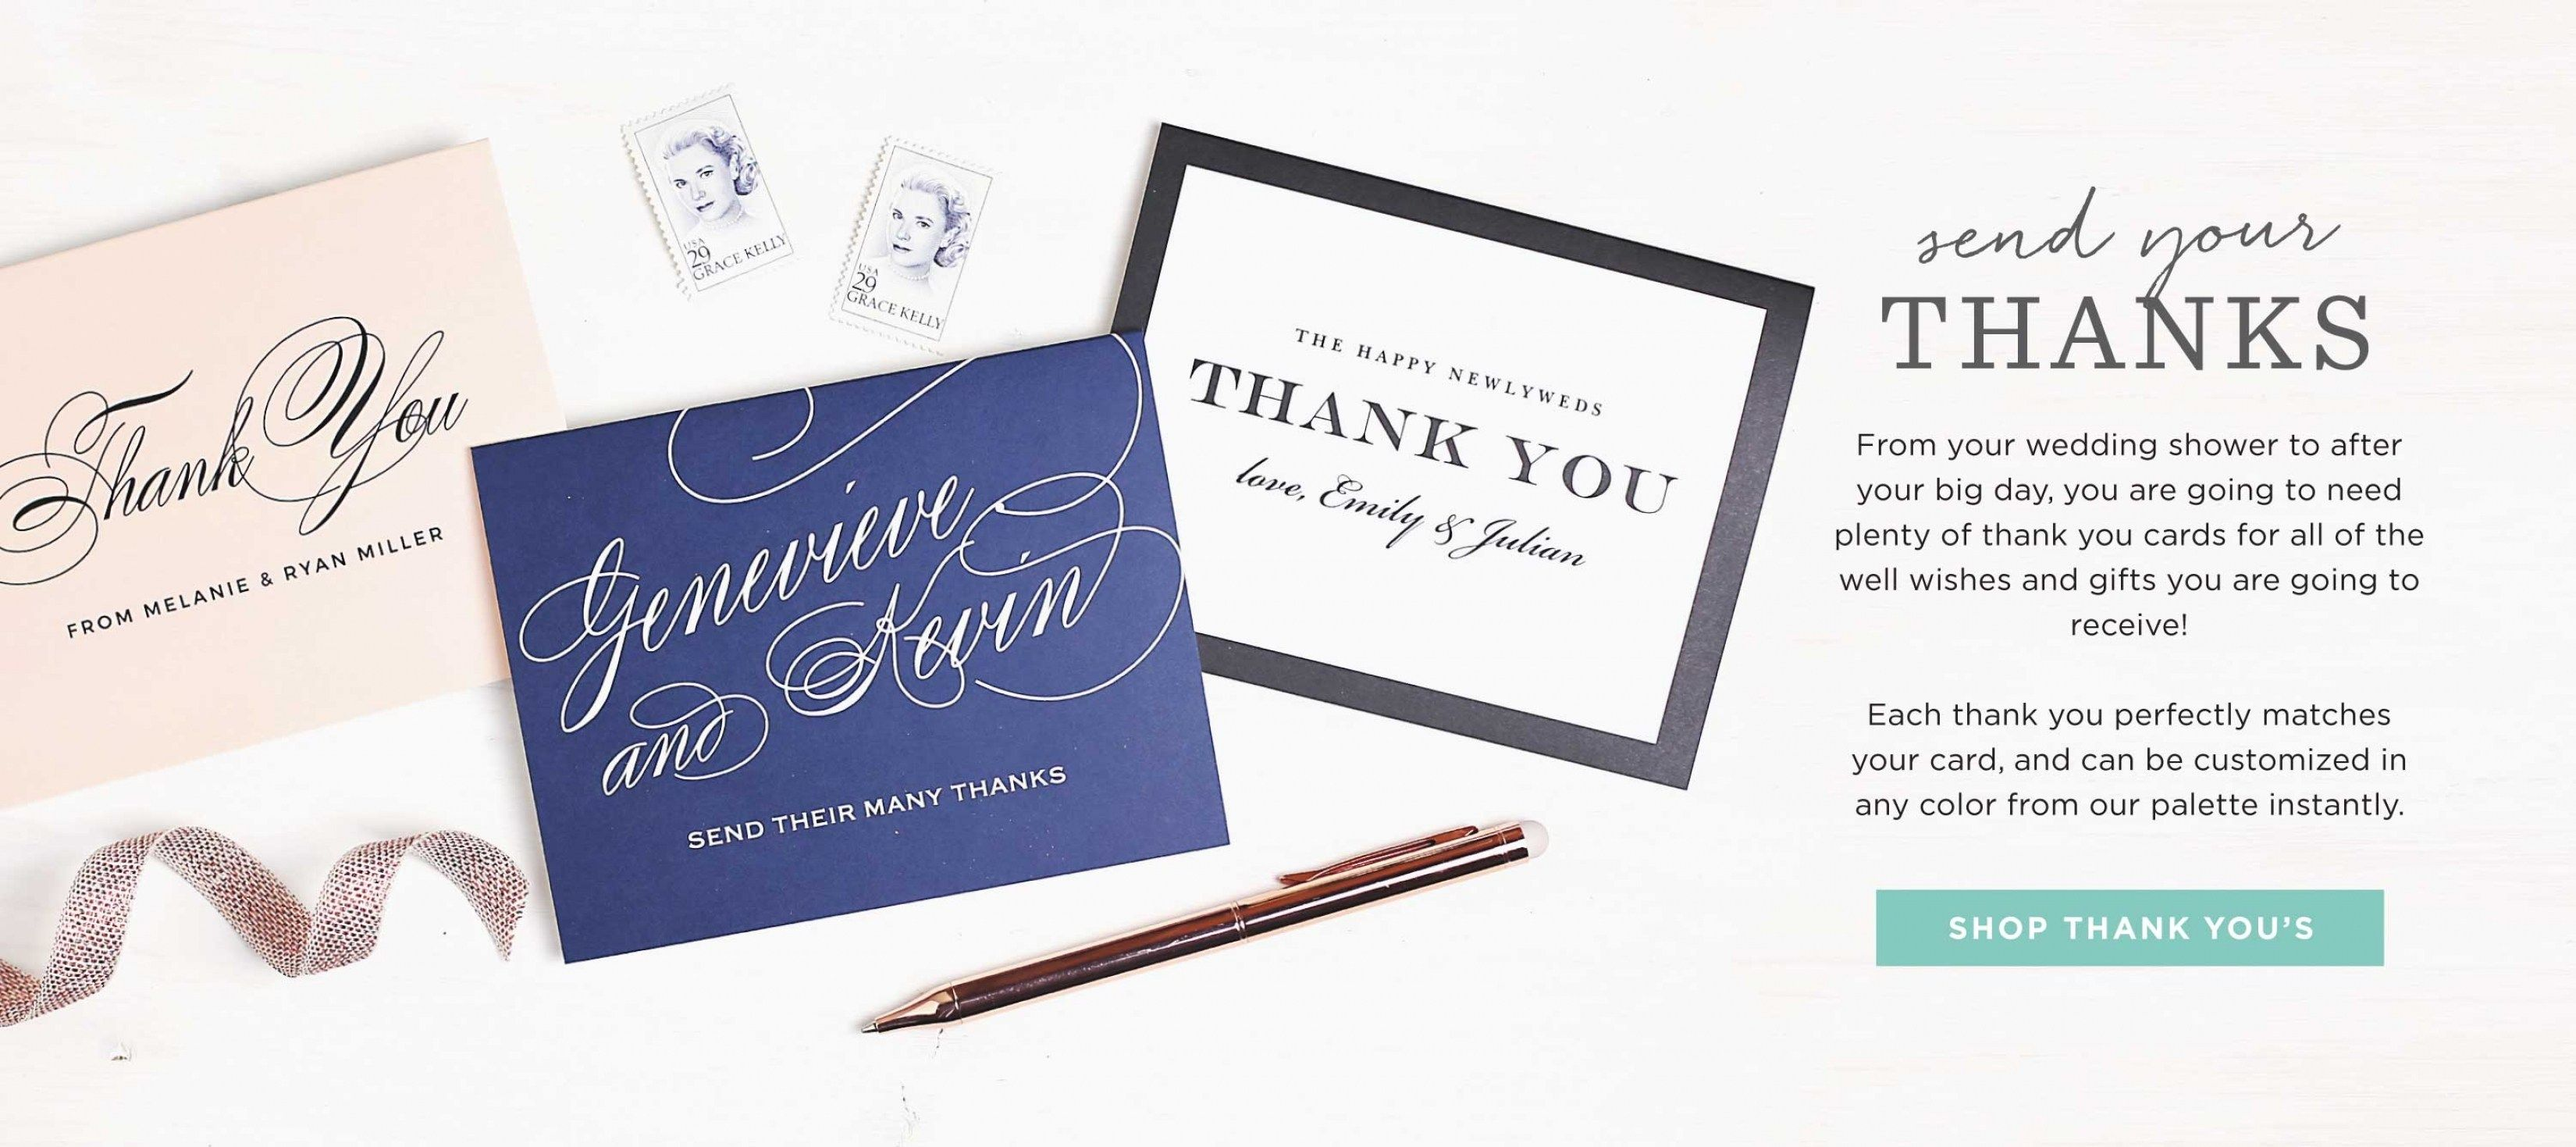 30 beautiful wedding shower thank you cards wedding invitation 30 beautiful wedding shower thank you cards monicamarmolfo Images